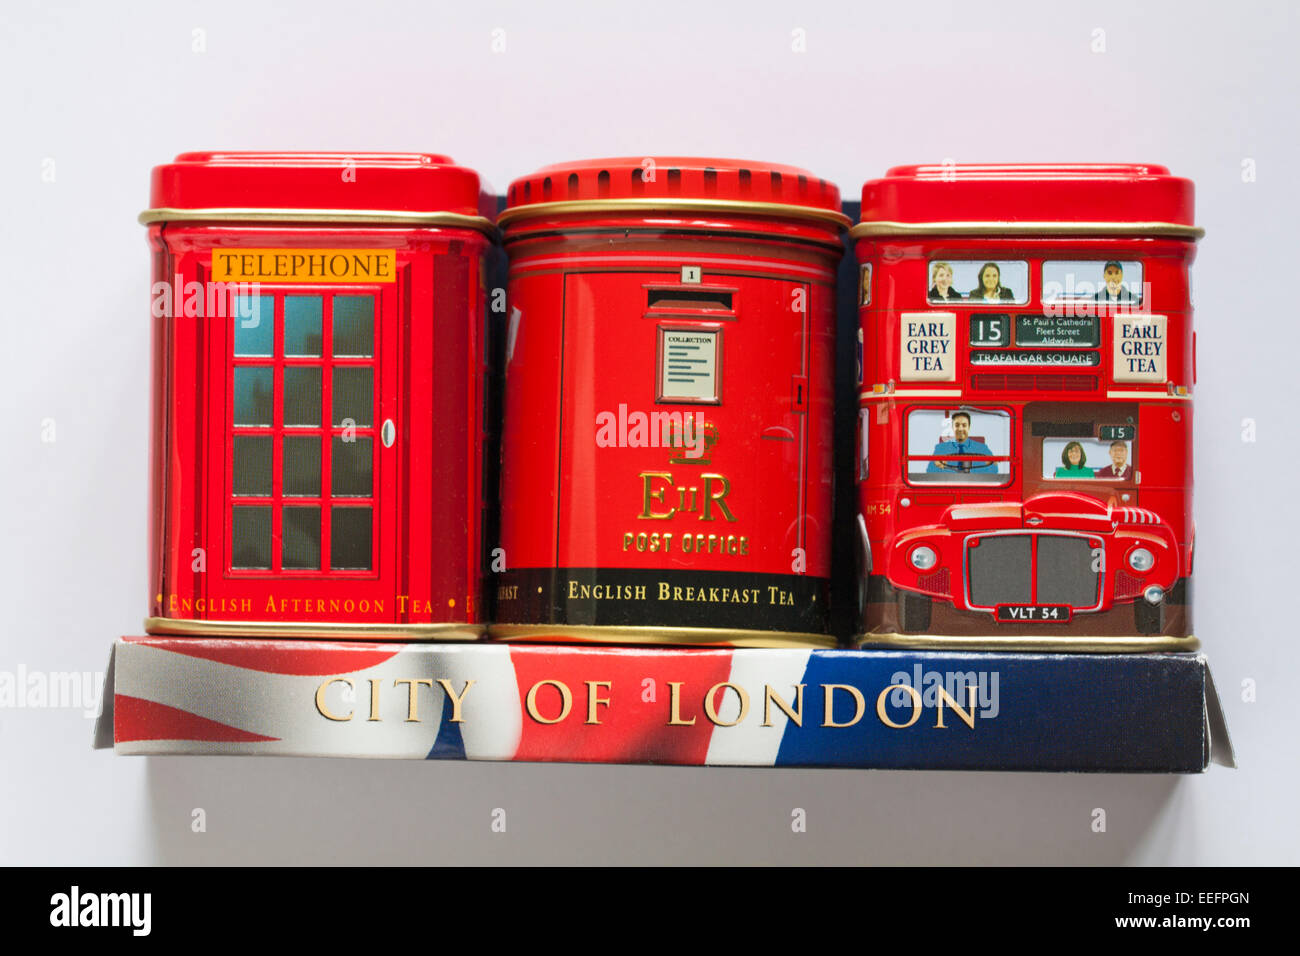 City of London tins of tea - red double decker bus, telephone box and post box isolated on white background Stock Photo